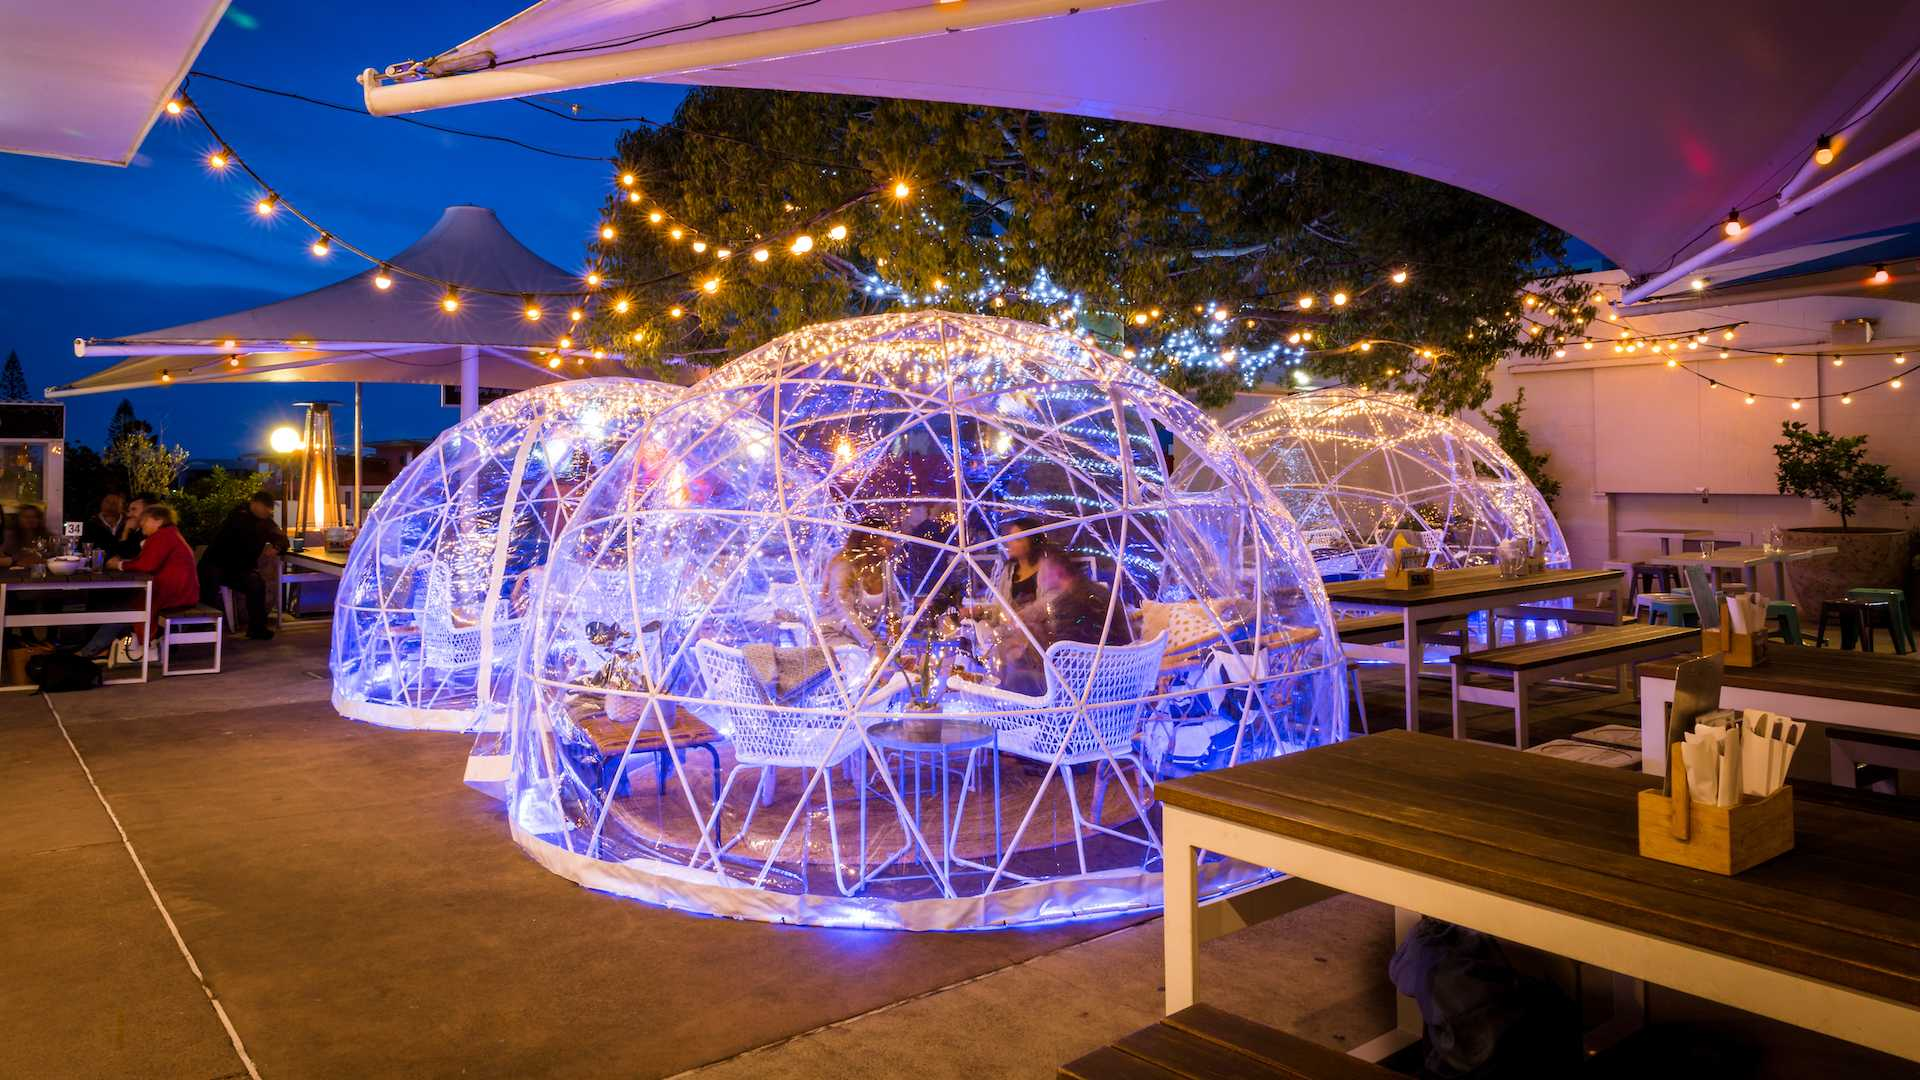 The Best Things to Do in Brisbane This Long Weekend